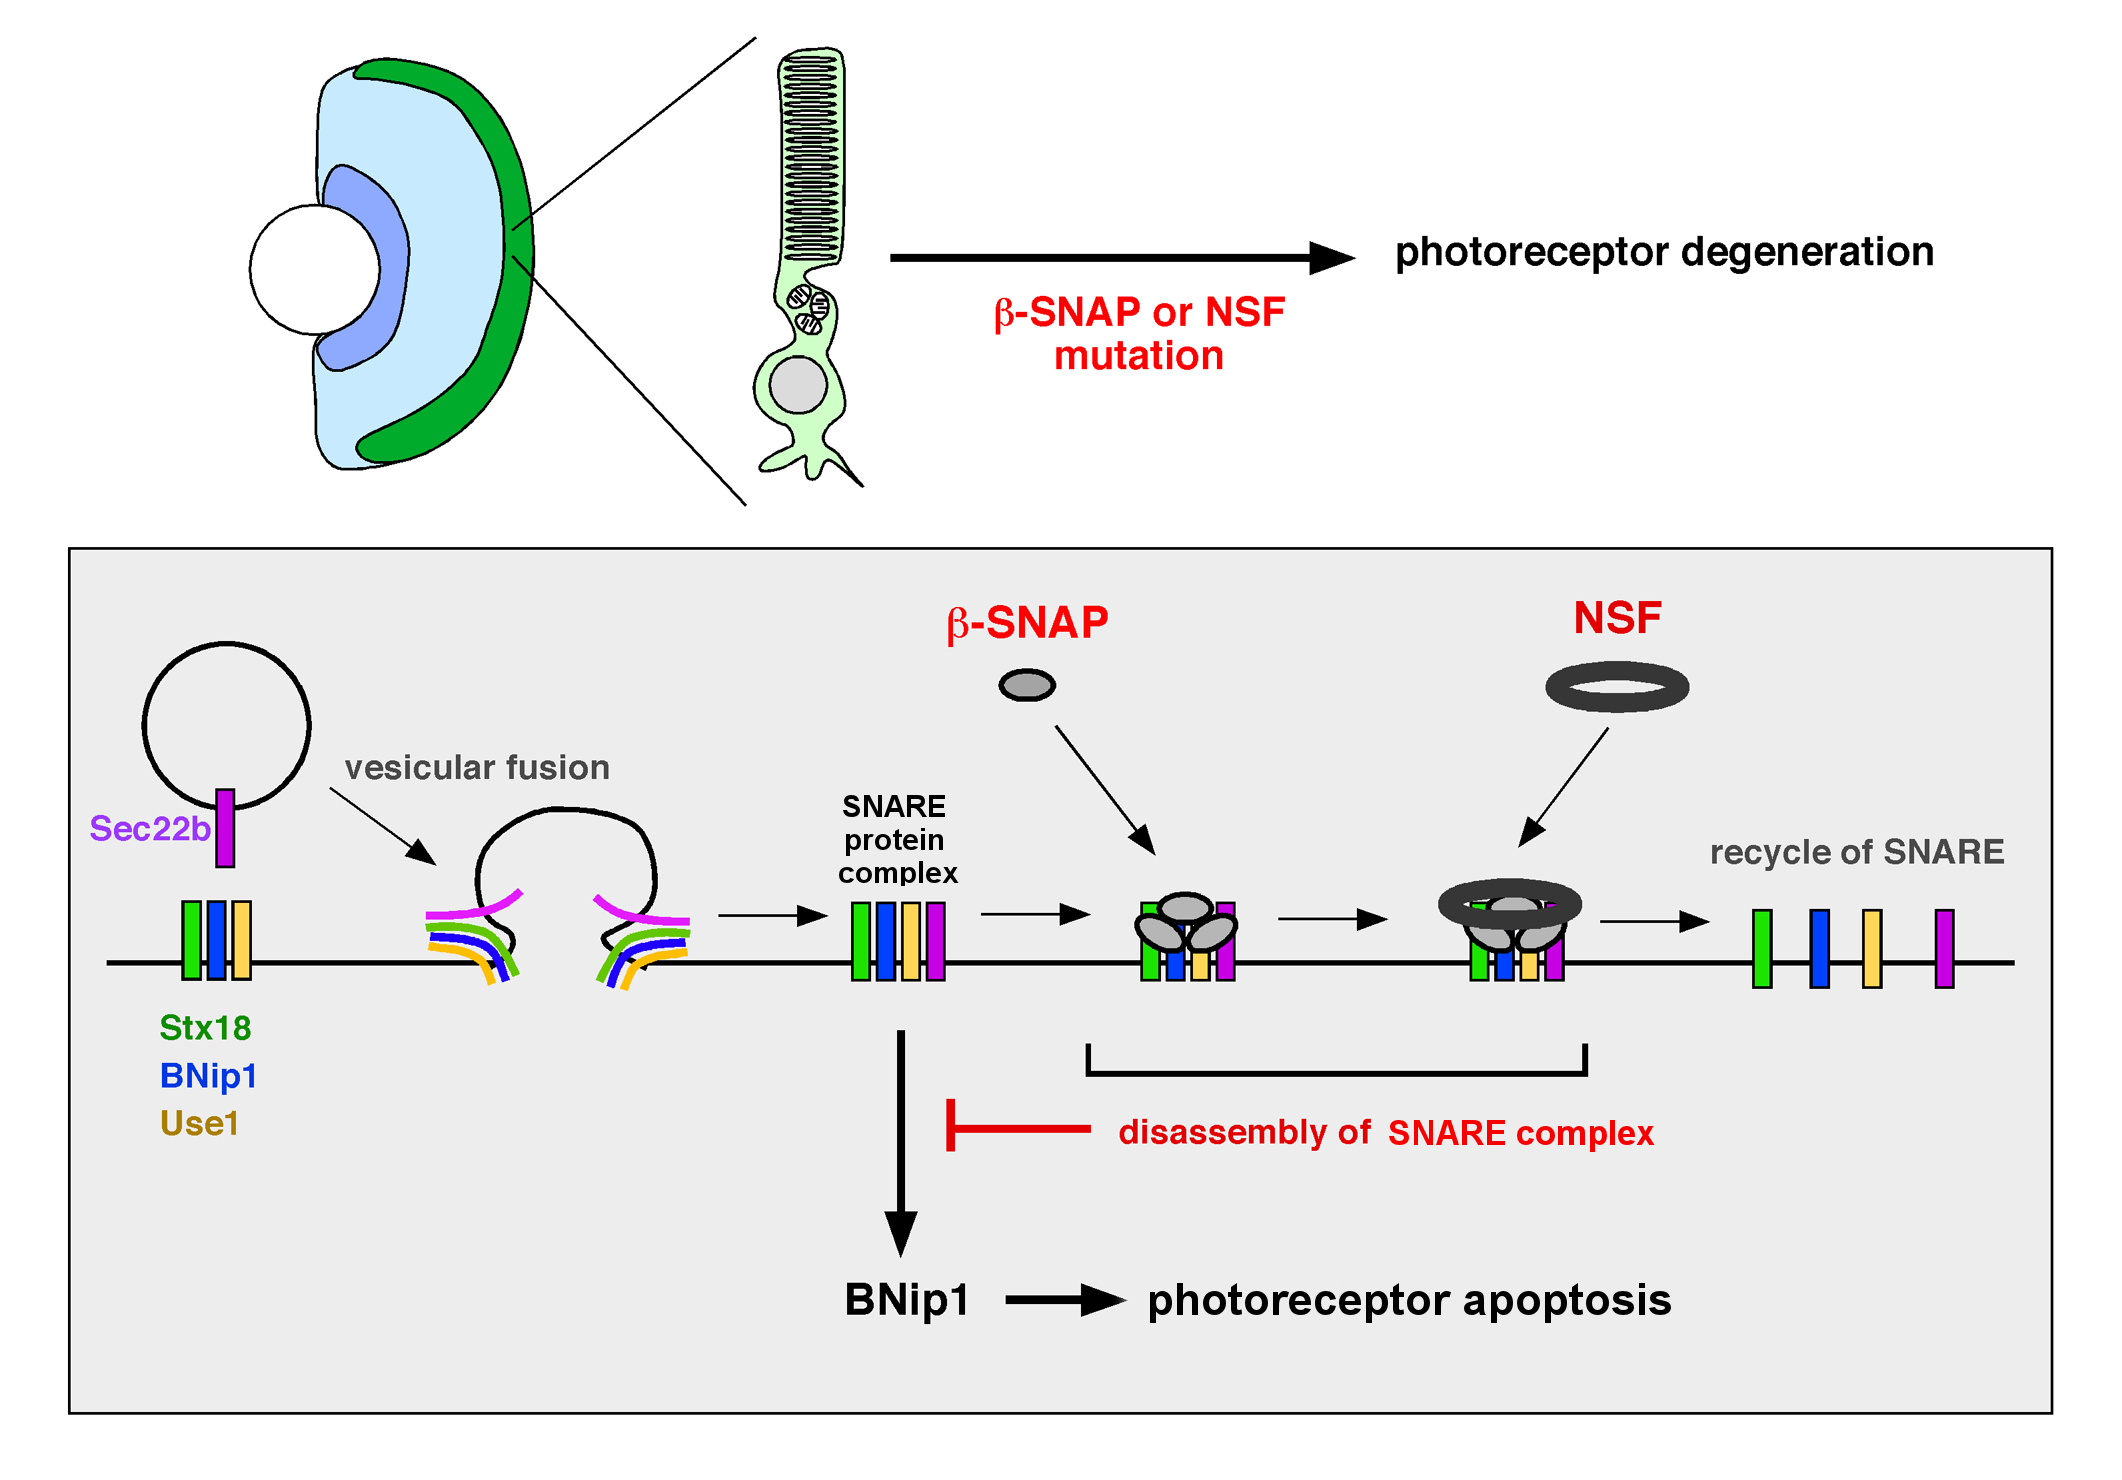 BNip1 Links Photoreceptor Apoptosis and Protein Transport Defects